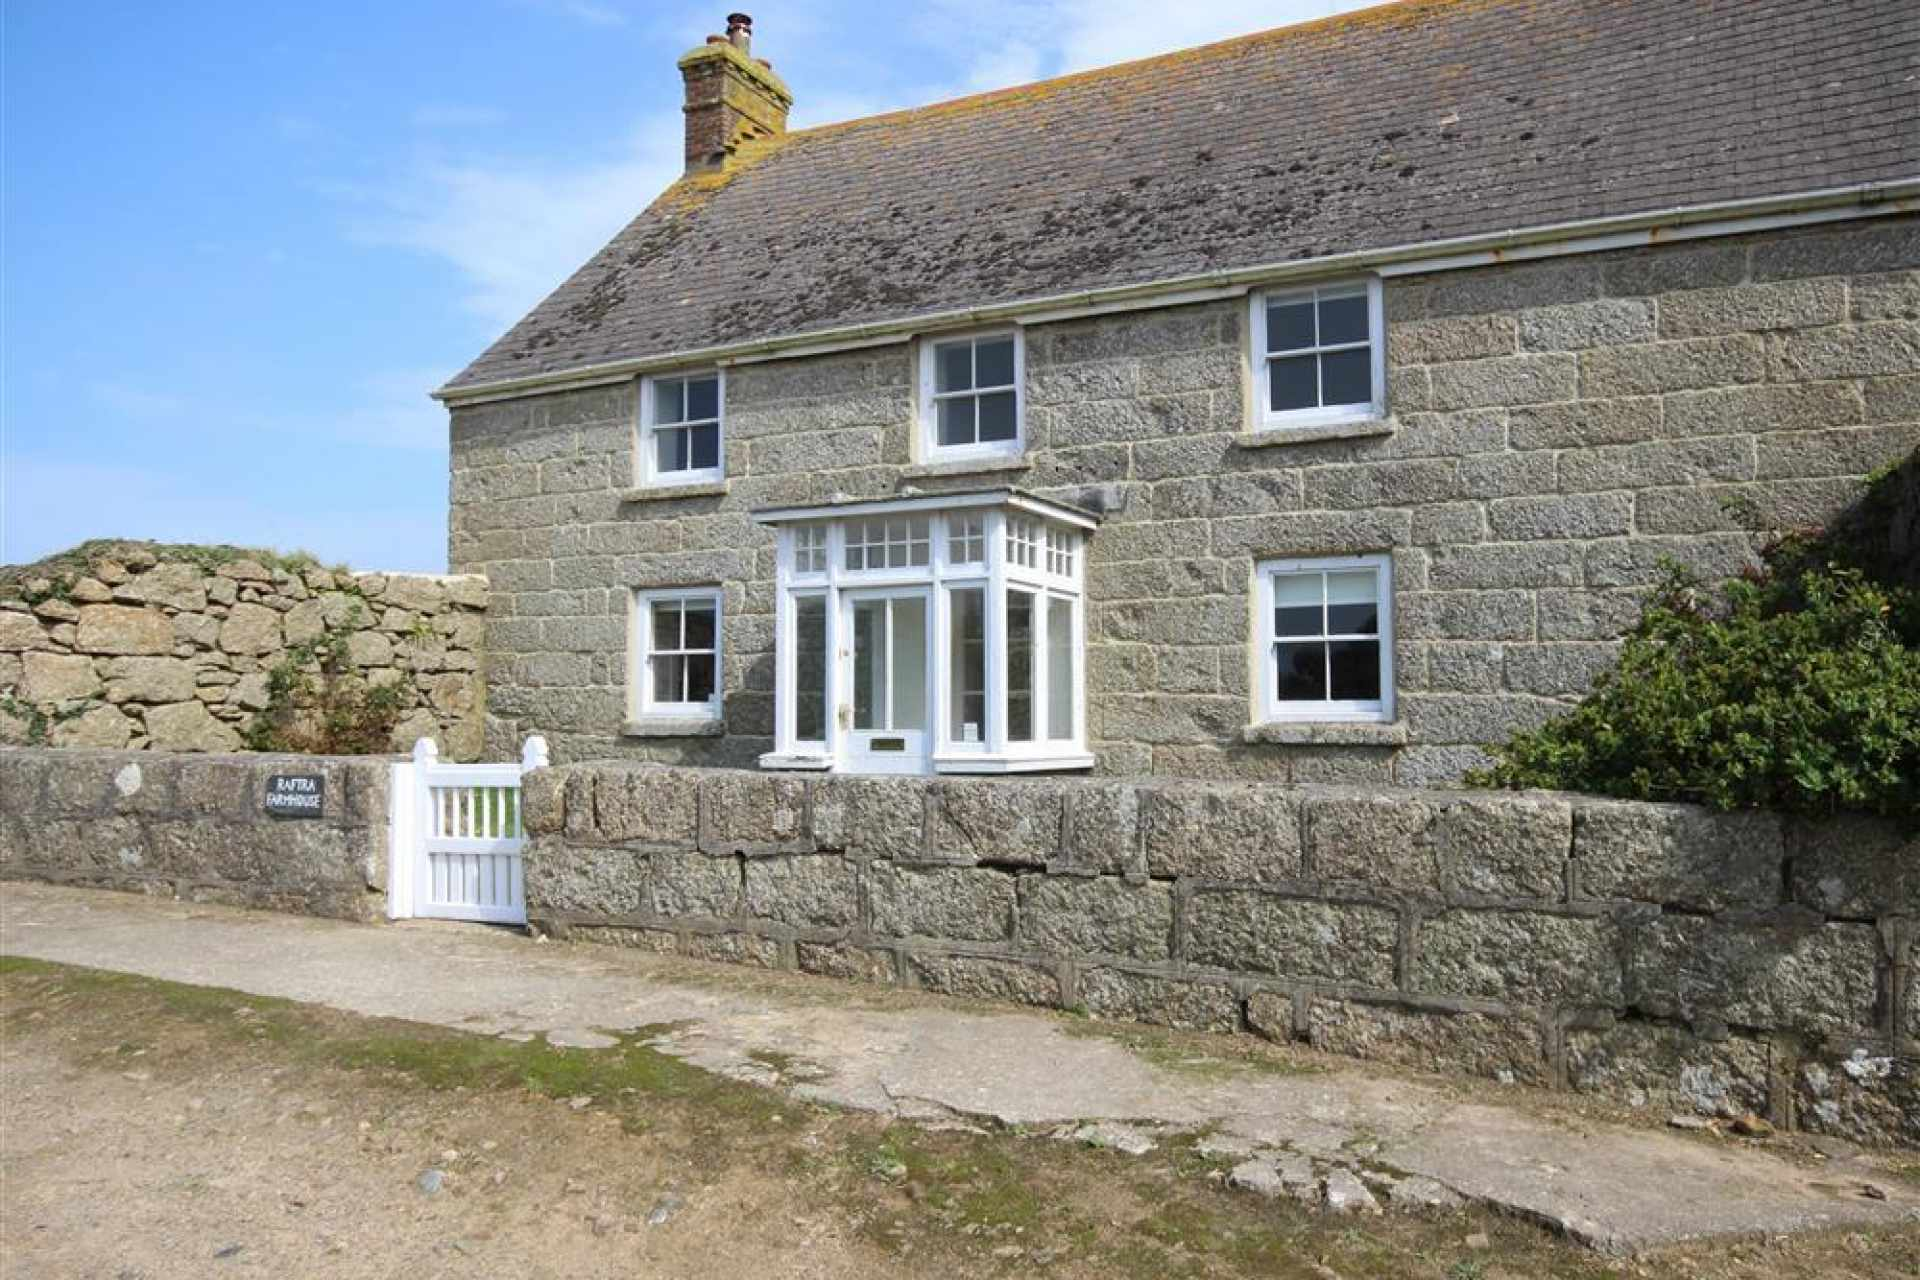 Raftra Farmhouse in Porthcurno sleeps 8-12 guests and is available for your holiday